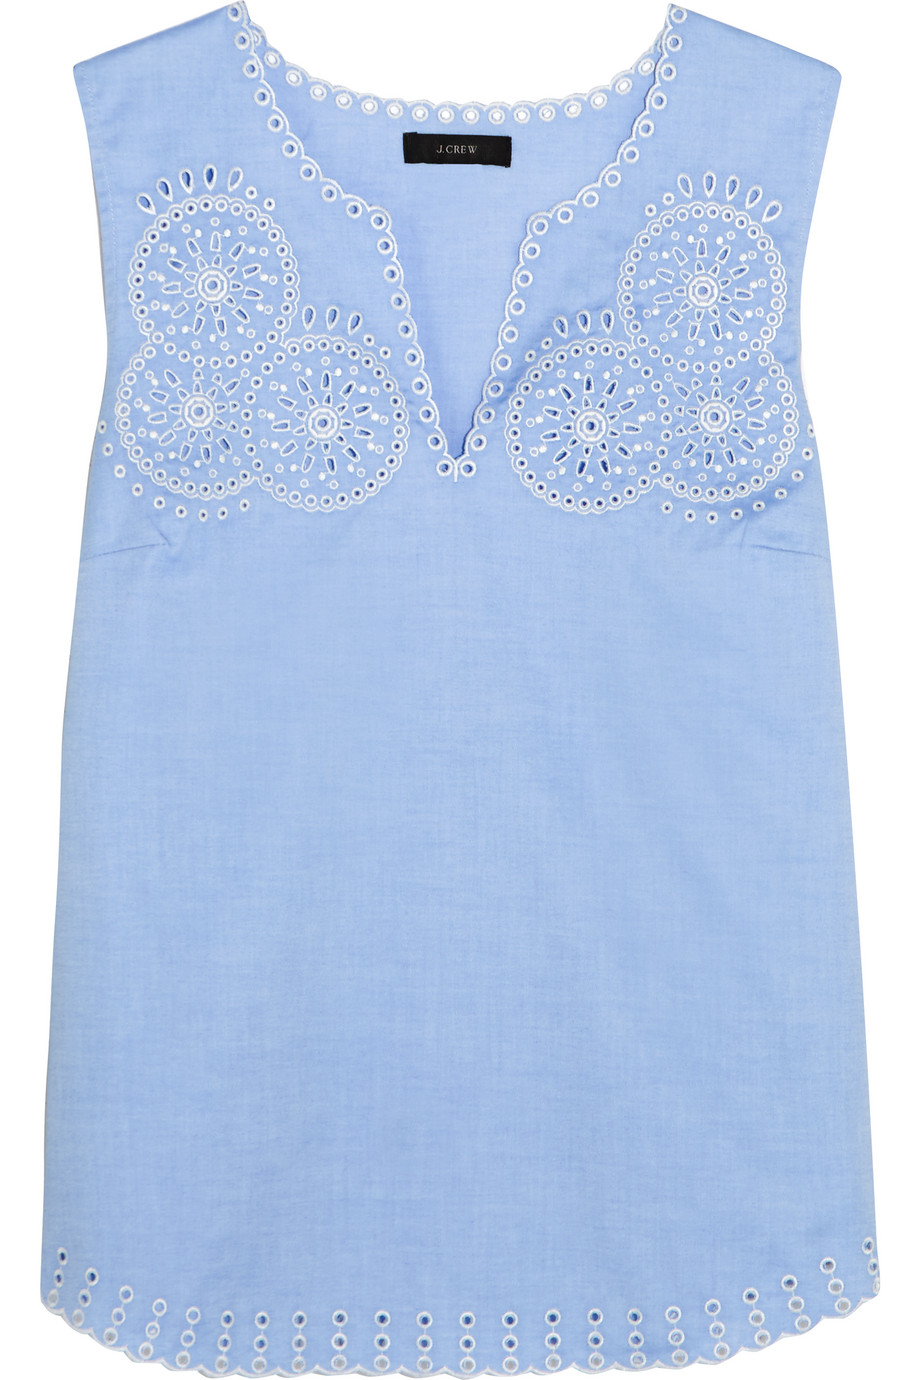 J.Crew Broderie Anglaise Cotton-Poplin Top, Light Blue, Women's, Size: 6